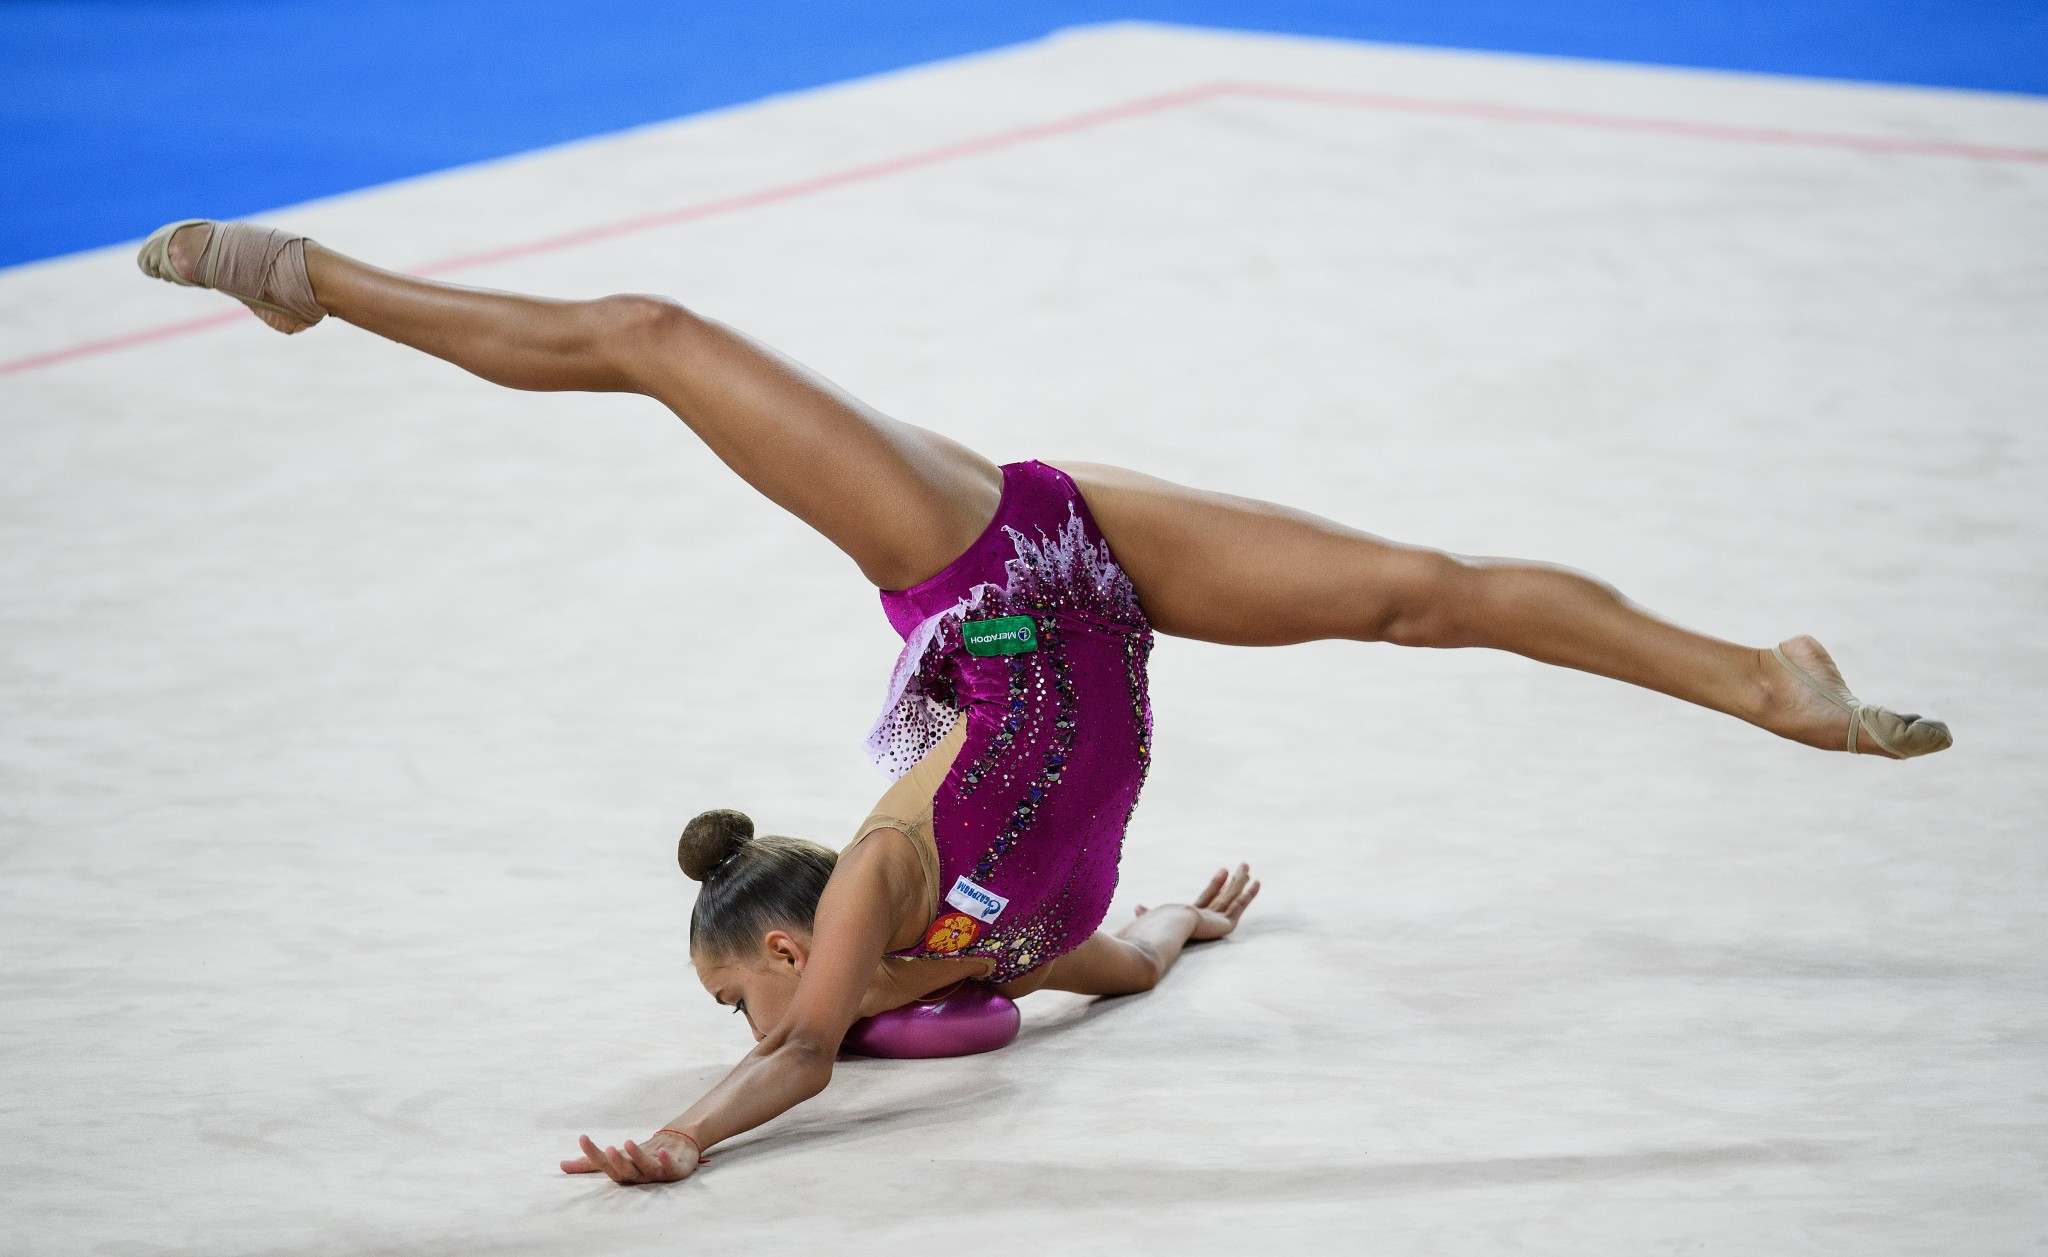 Dina Averina clinches all-around title at FIG Rhythmic Gymnastics World Championships